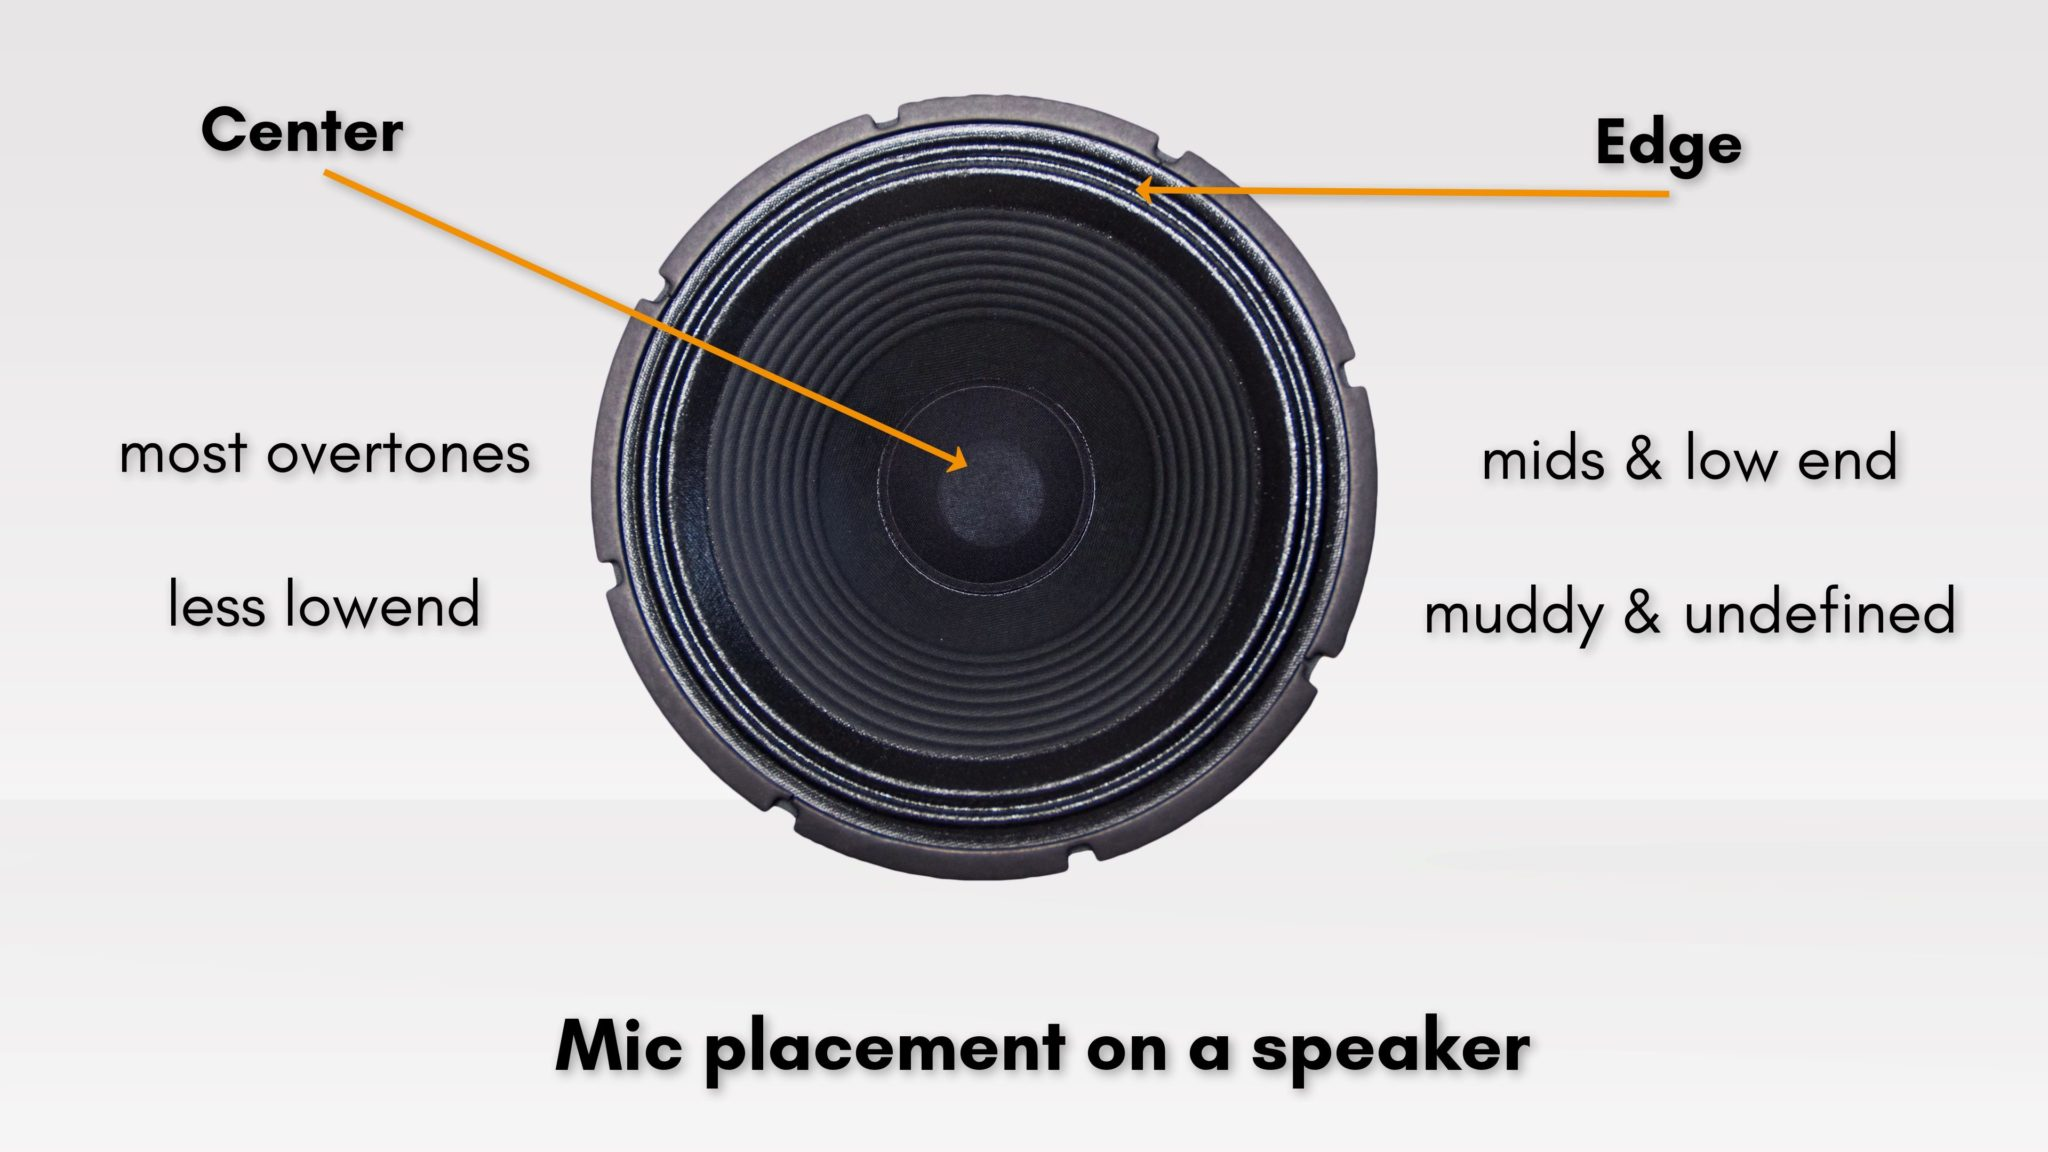 Illustration of a guitar speaker to show how different the sound is dependent on the placement. The edge has more low end, the cone more aggressive overtones.